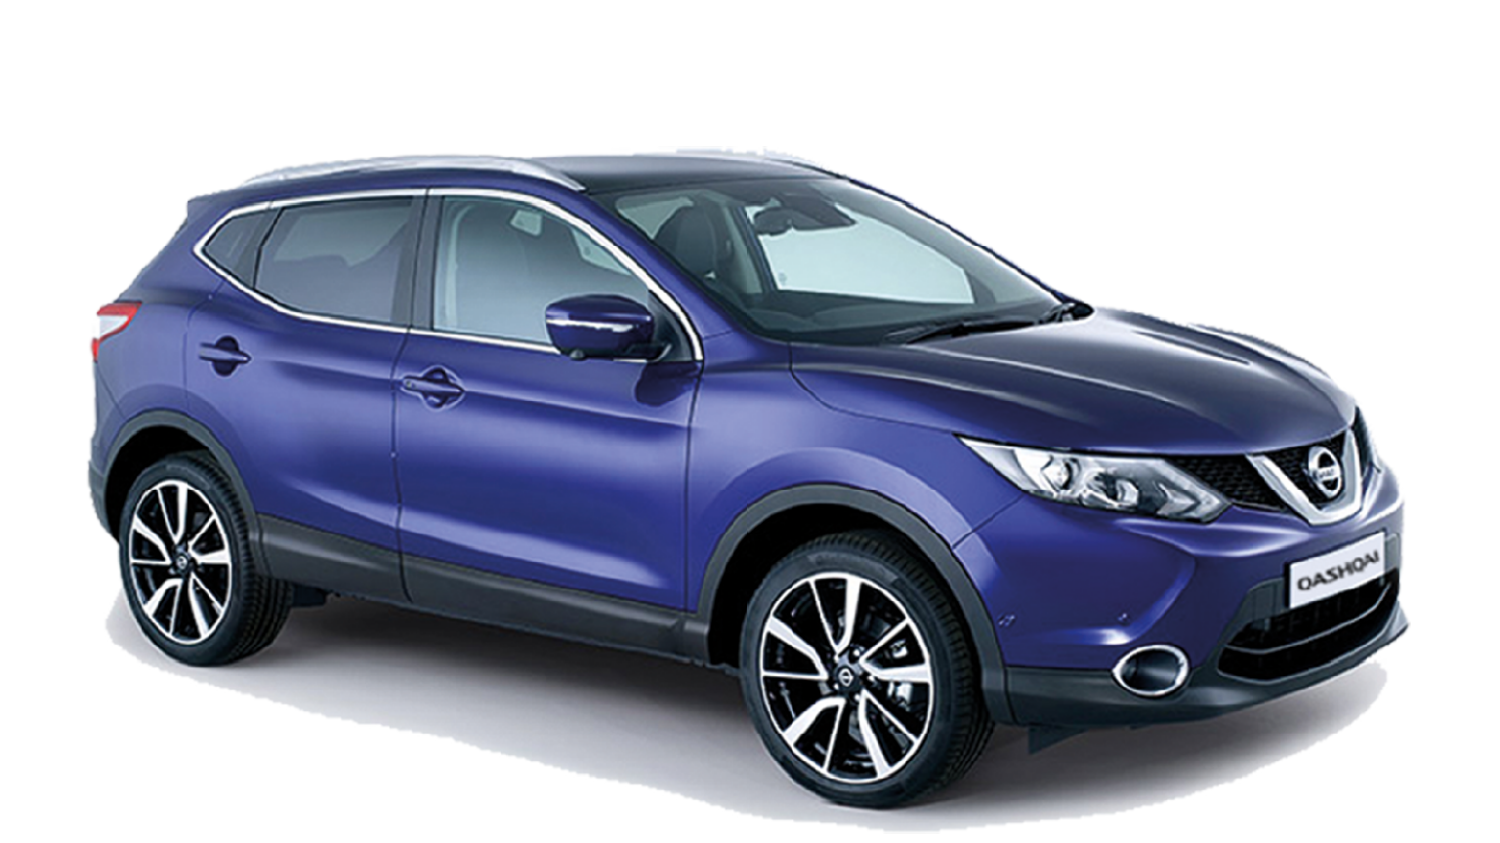 Qashqai crossver 1.2L turbocharged